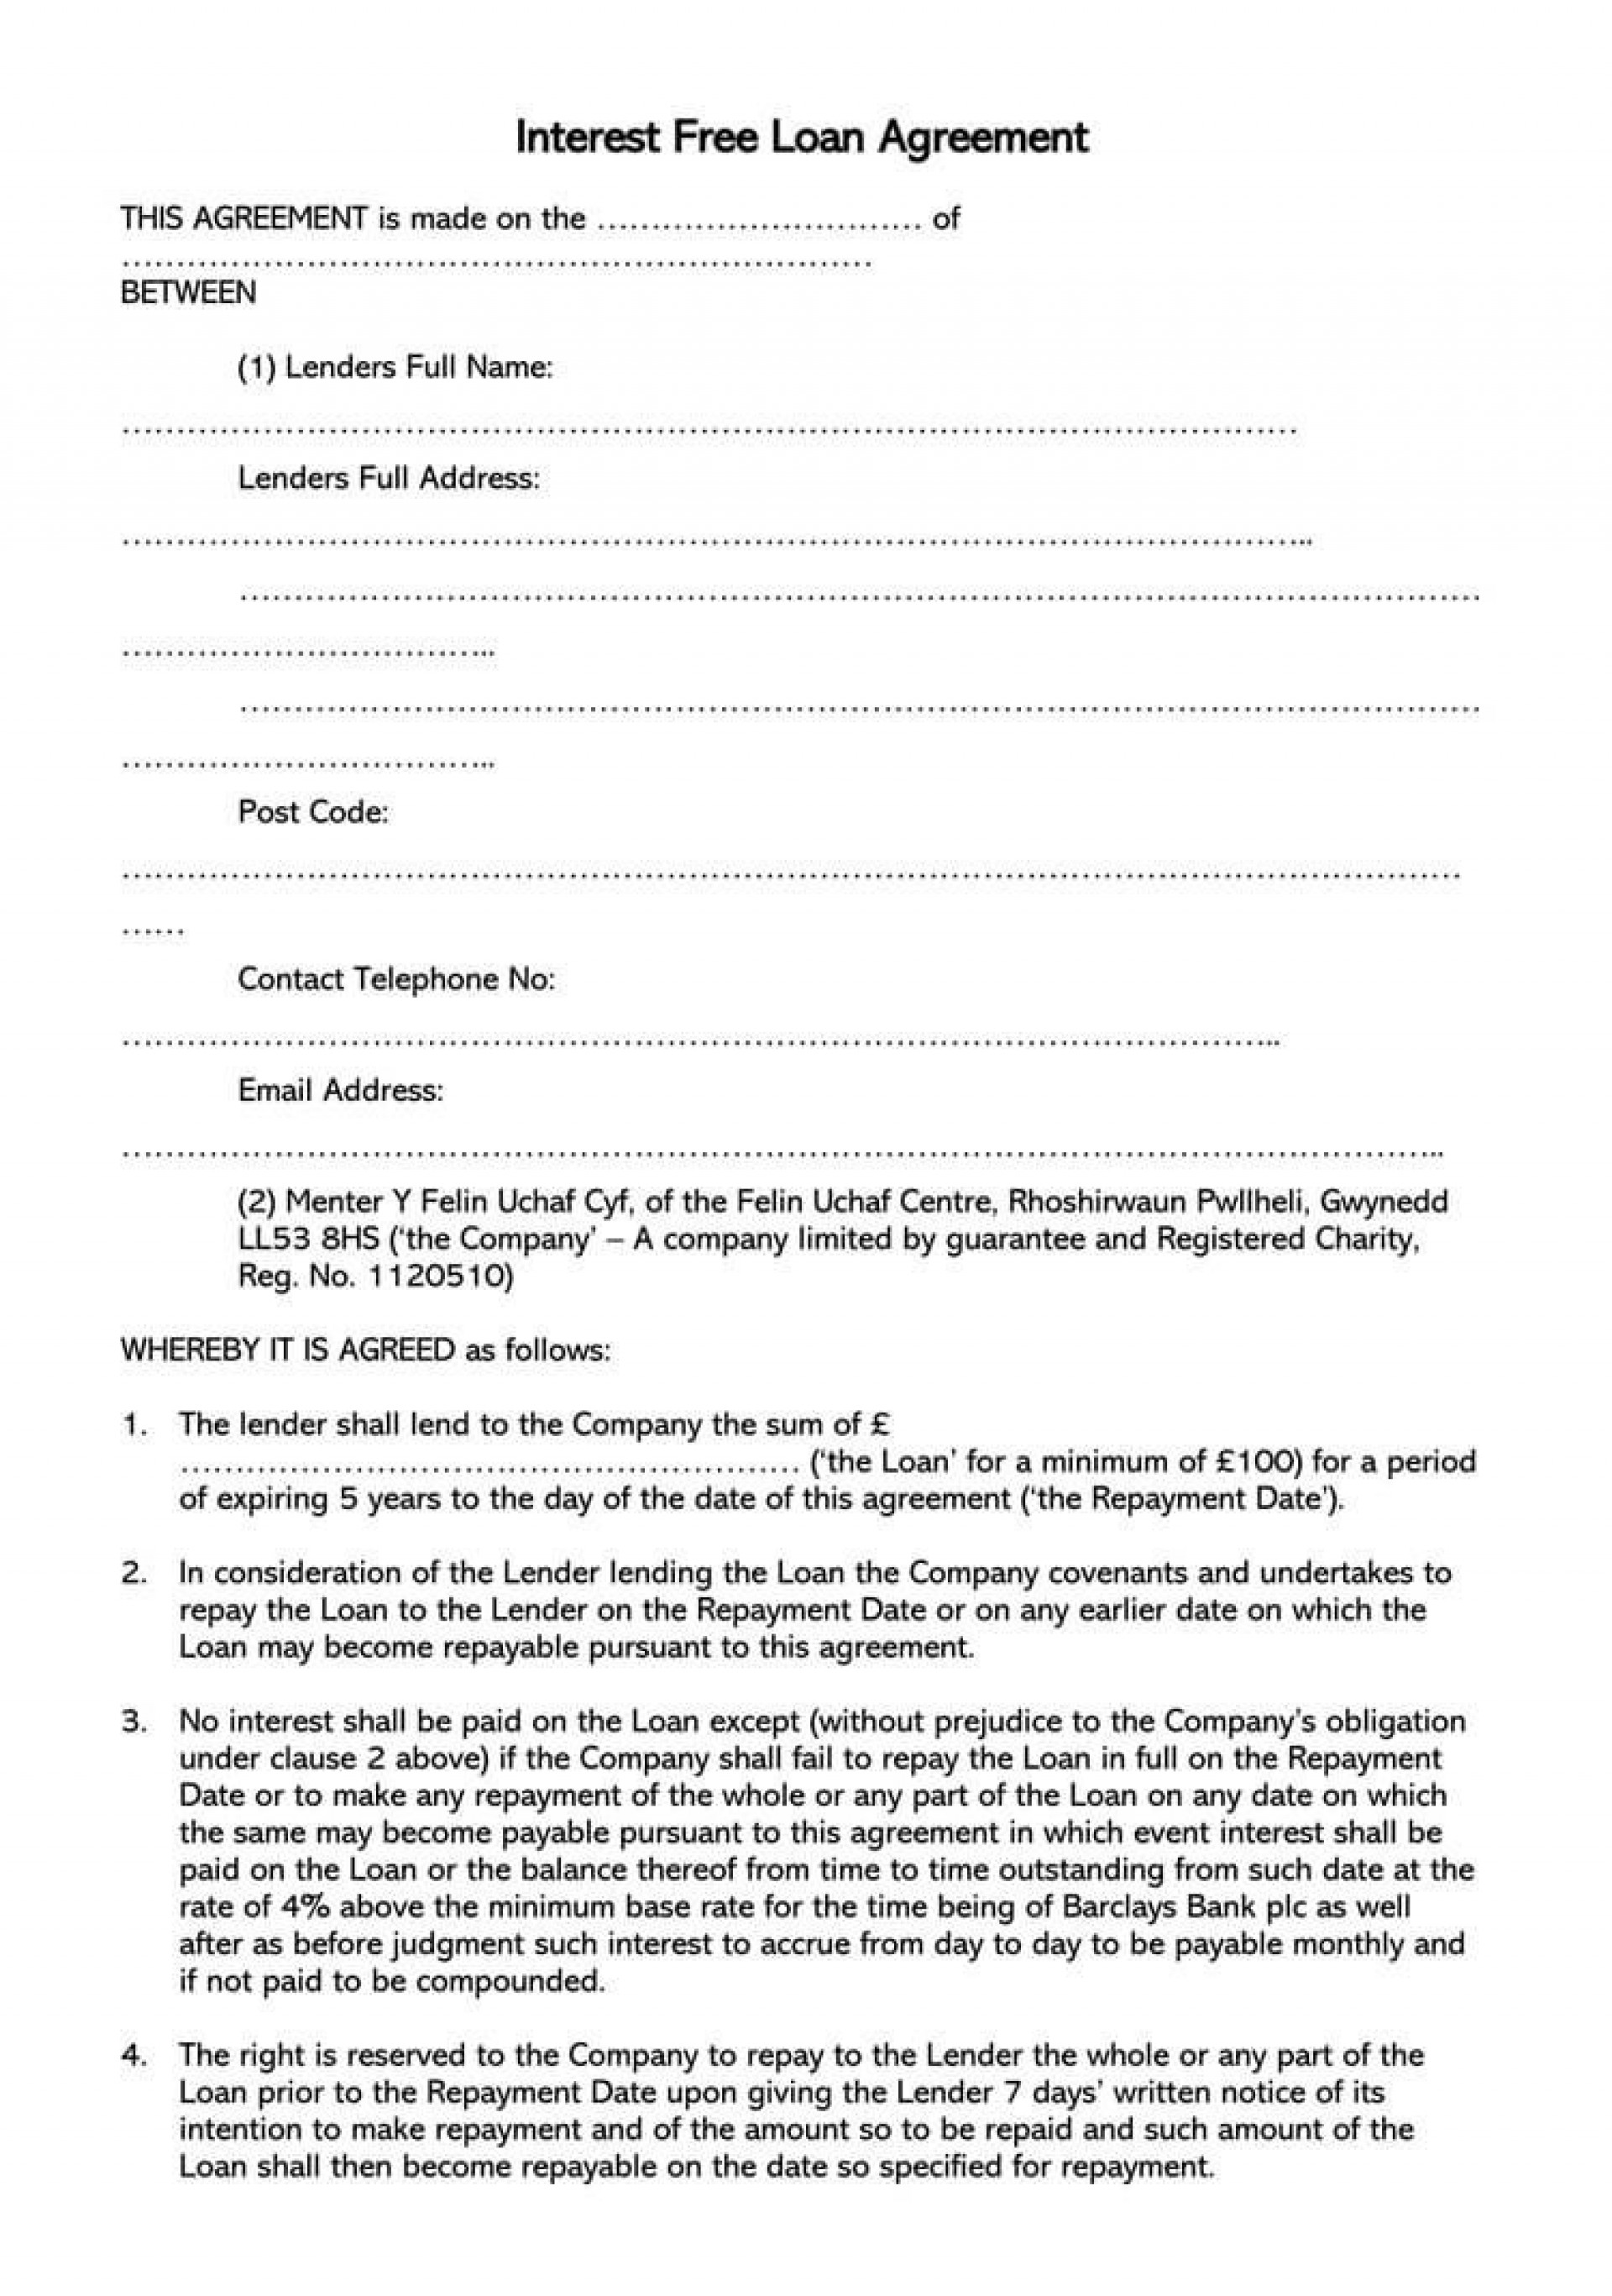 003 Simple Free Loan Agreement Template Example  Word Uk South African Interest1920